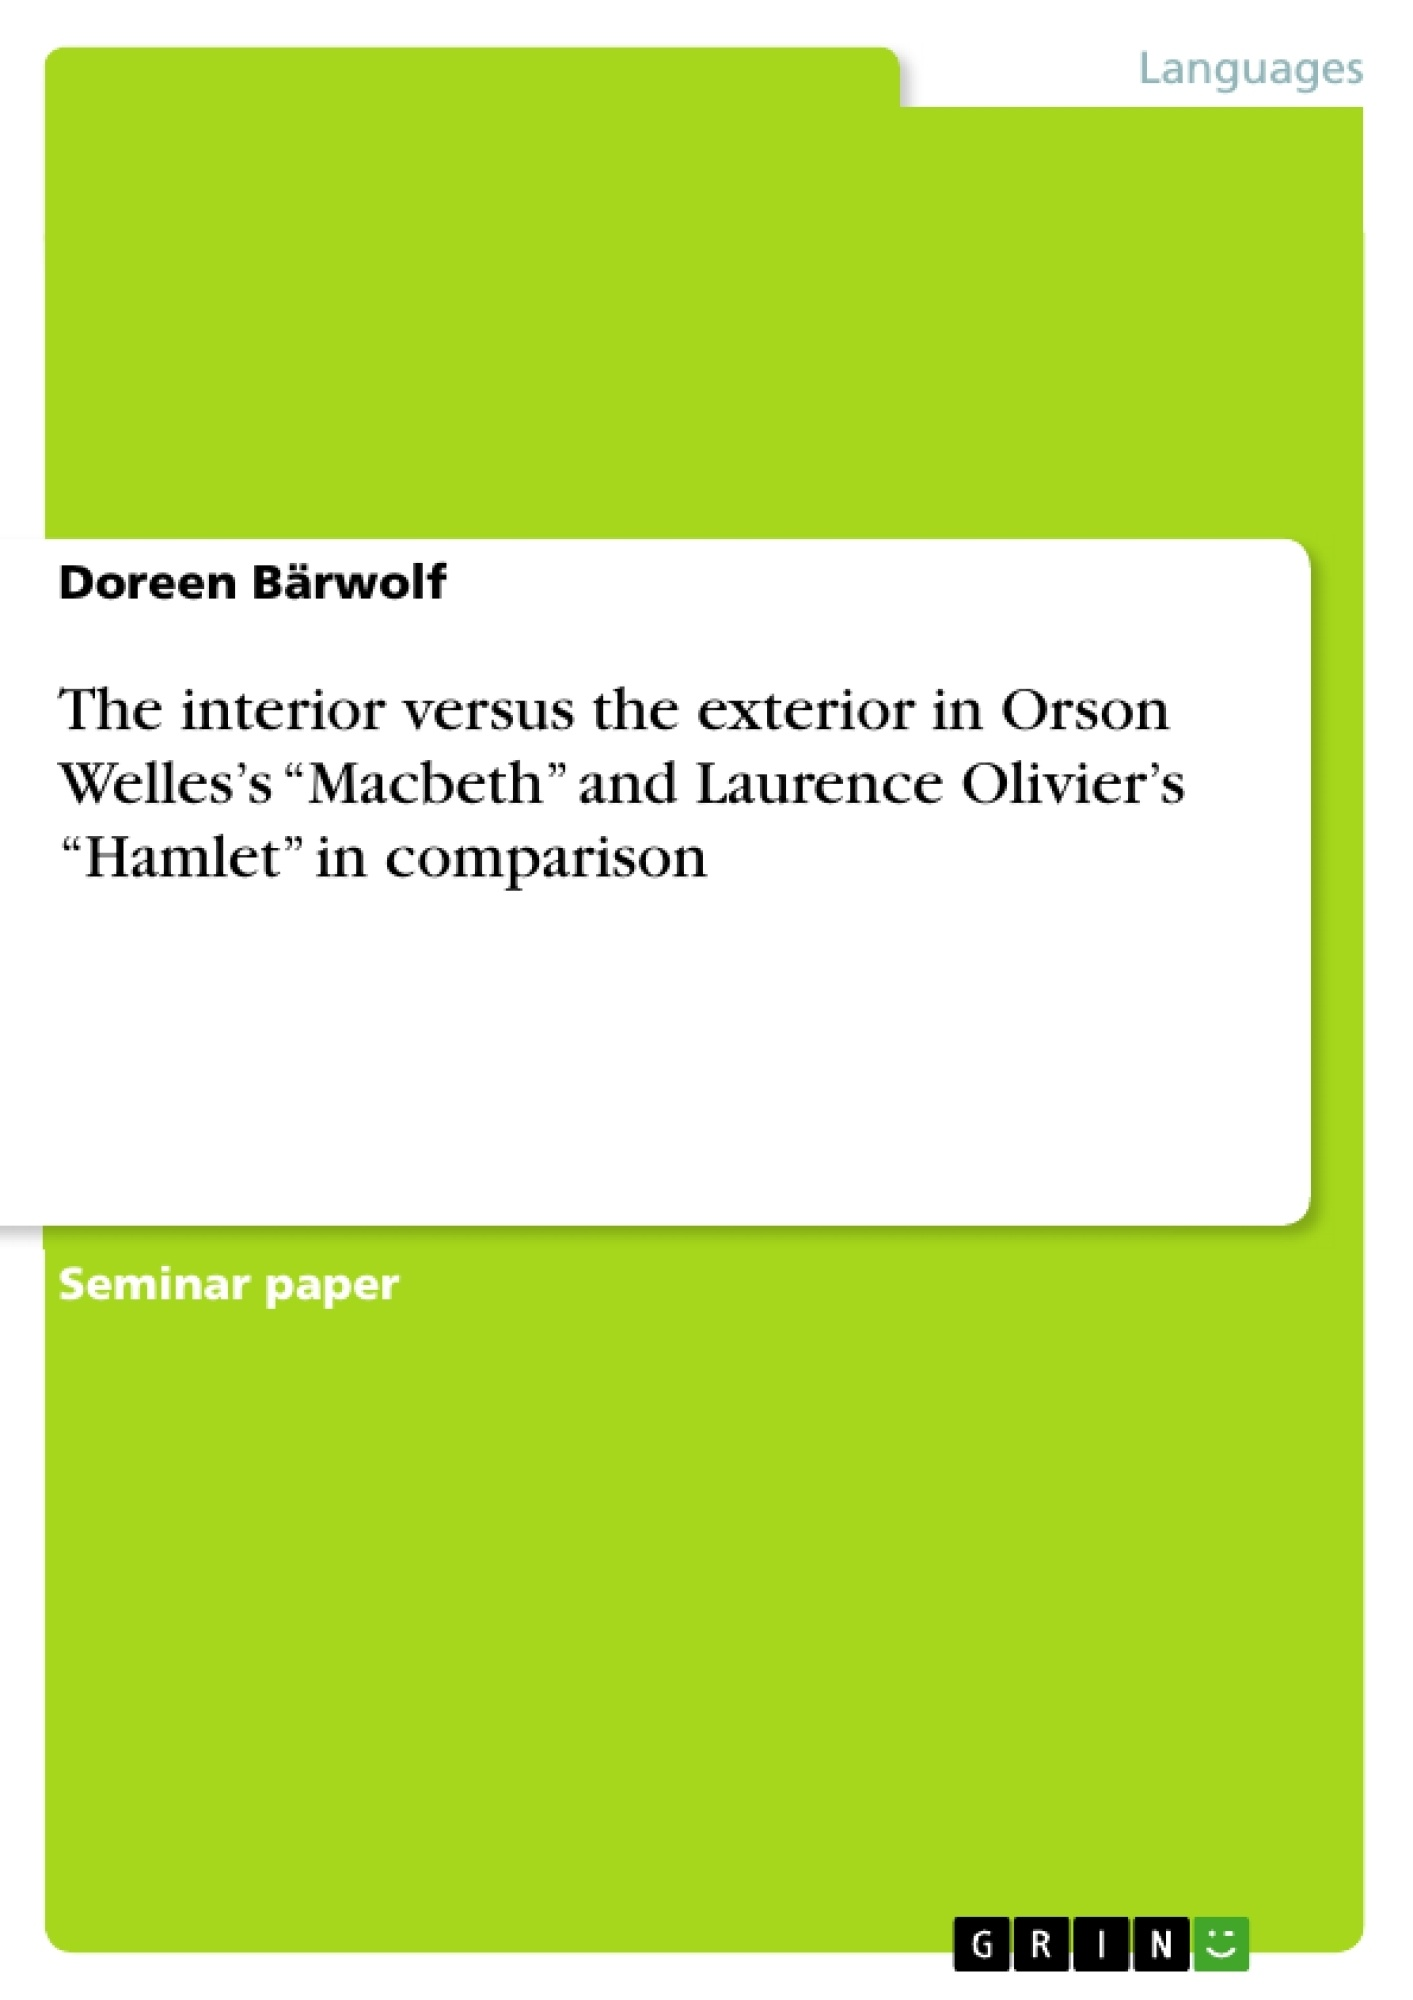 """Title: The interior versus the exterior in Orson Welles's """"Macbeth"""" and Laurence Olivier's """"Hamlet"""" in comparison"""